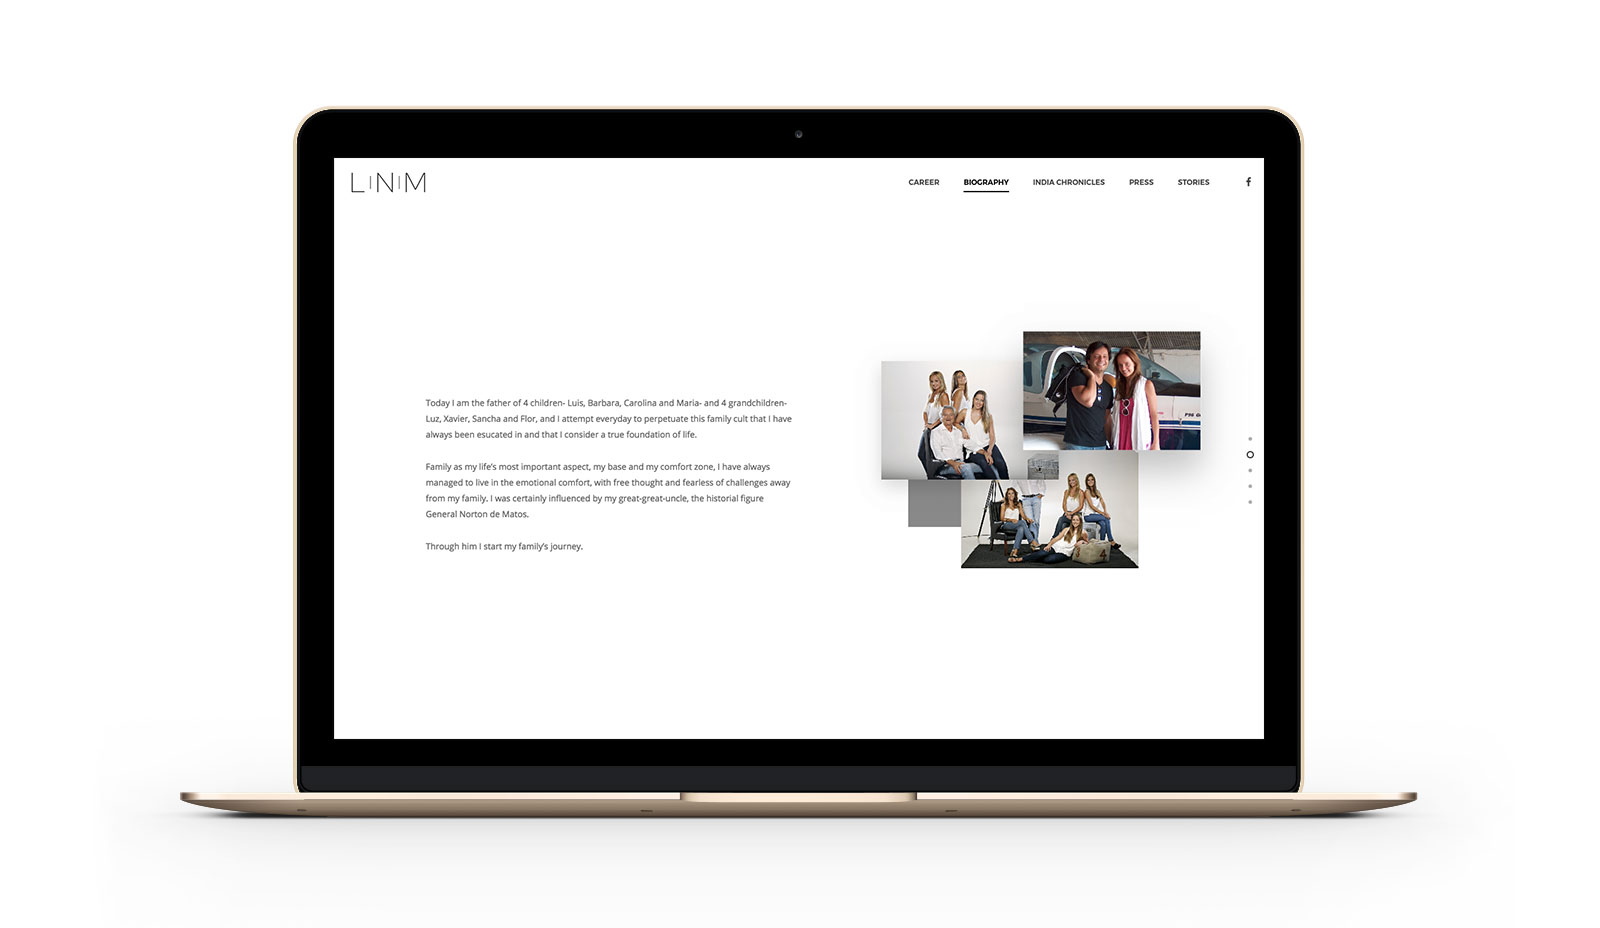 Luis norton de Matos website by Branditnext